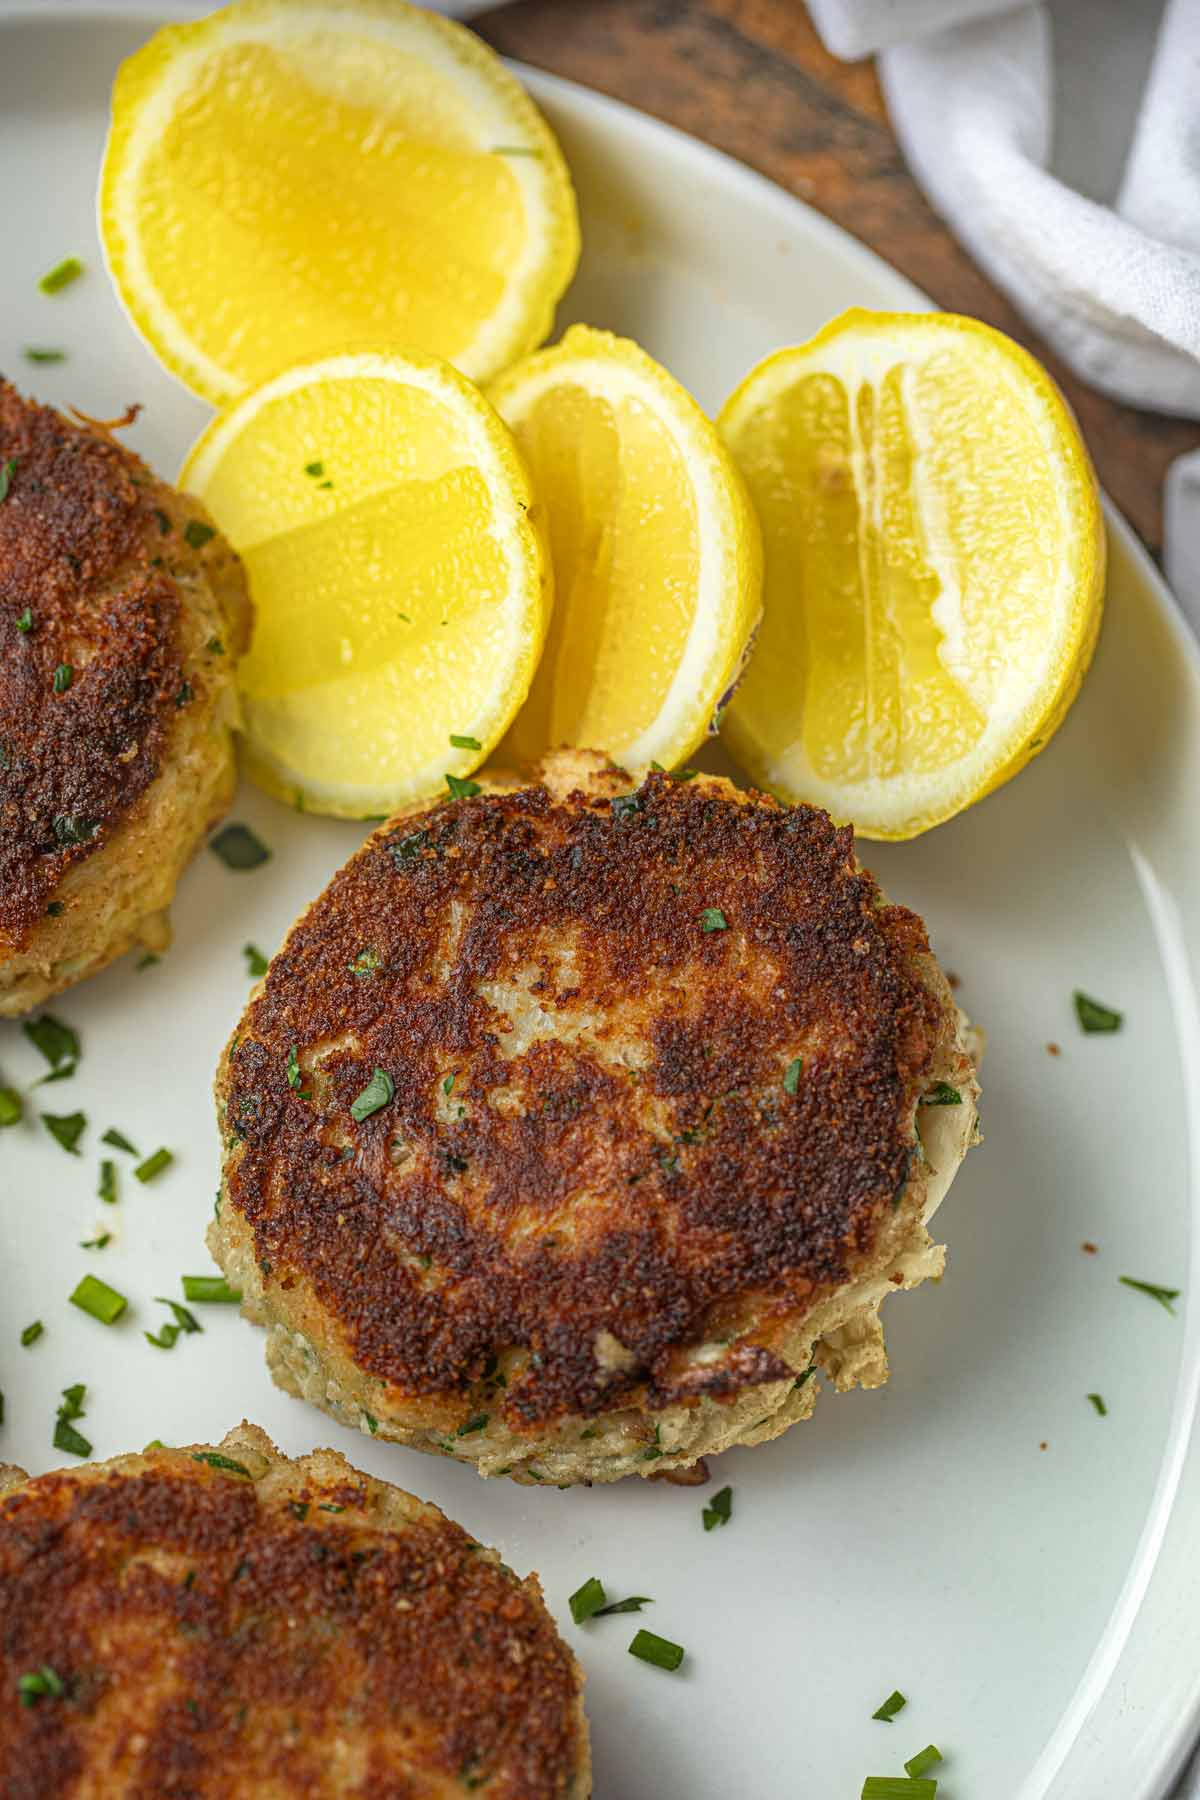 Crab Cake on plate with lemon